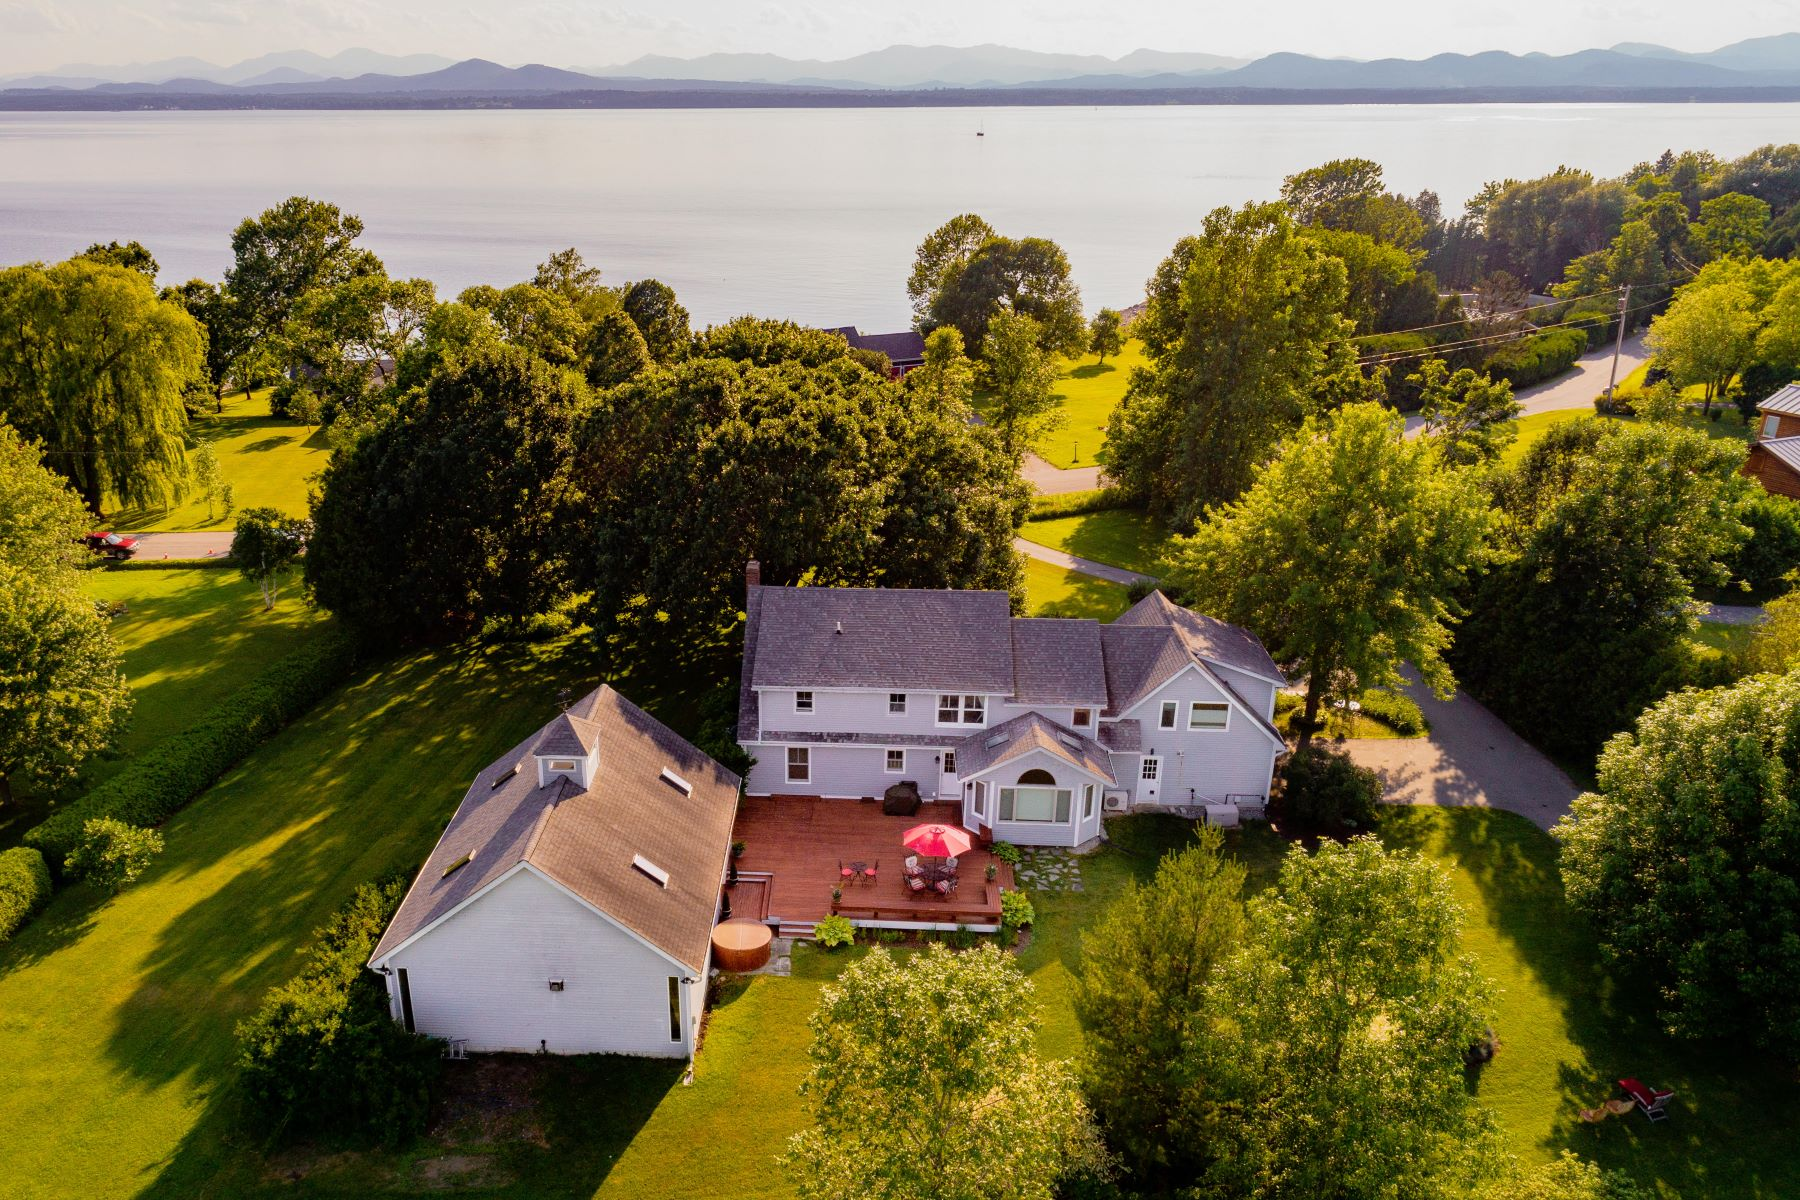 Single Family Home for Sale at 608 Hills Point Road, Charlotte 608 Hills Point Rd Charlotte, Vermont 05445 United States